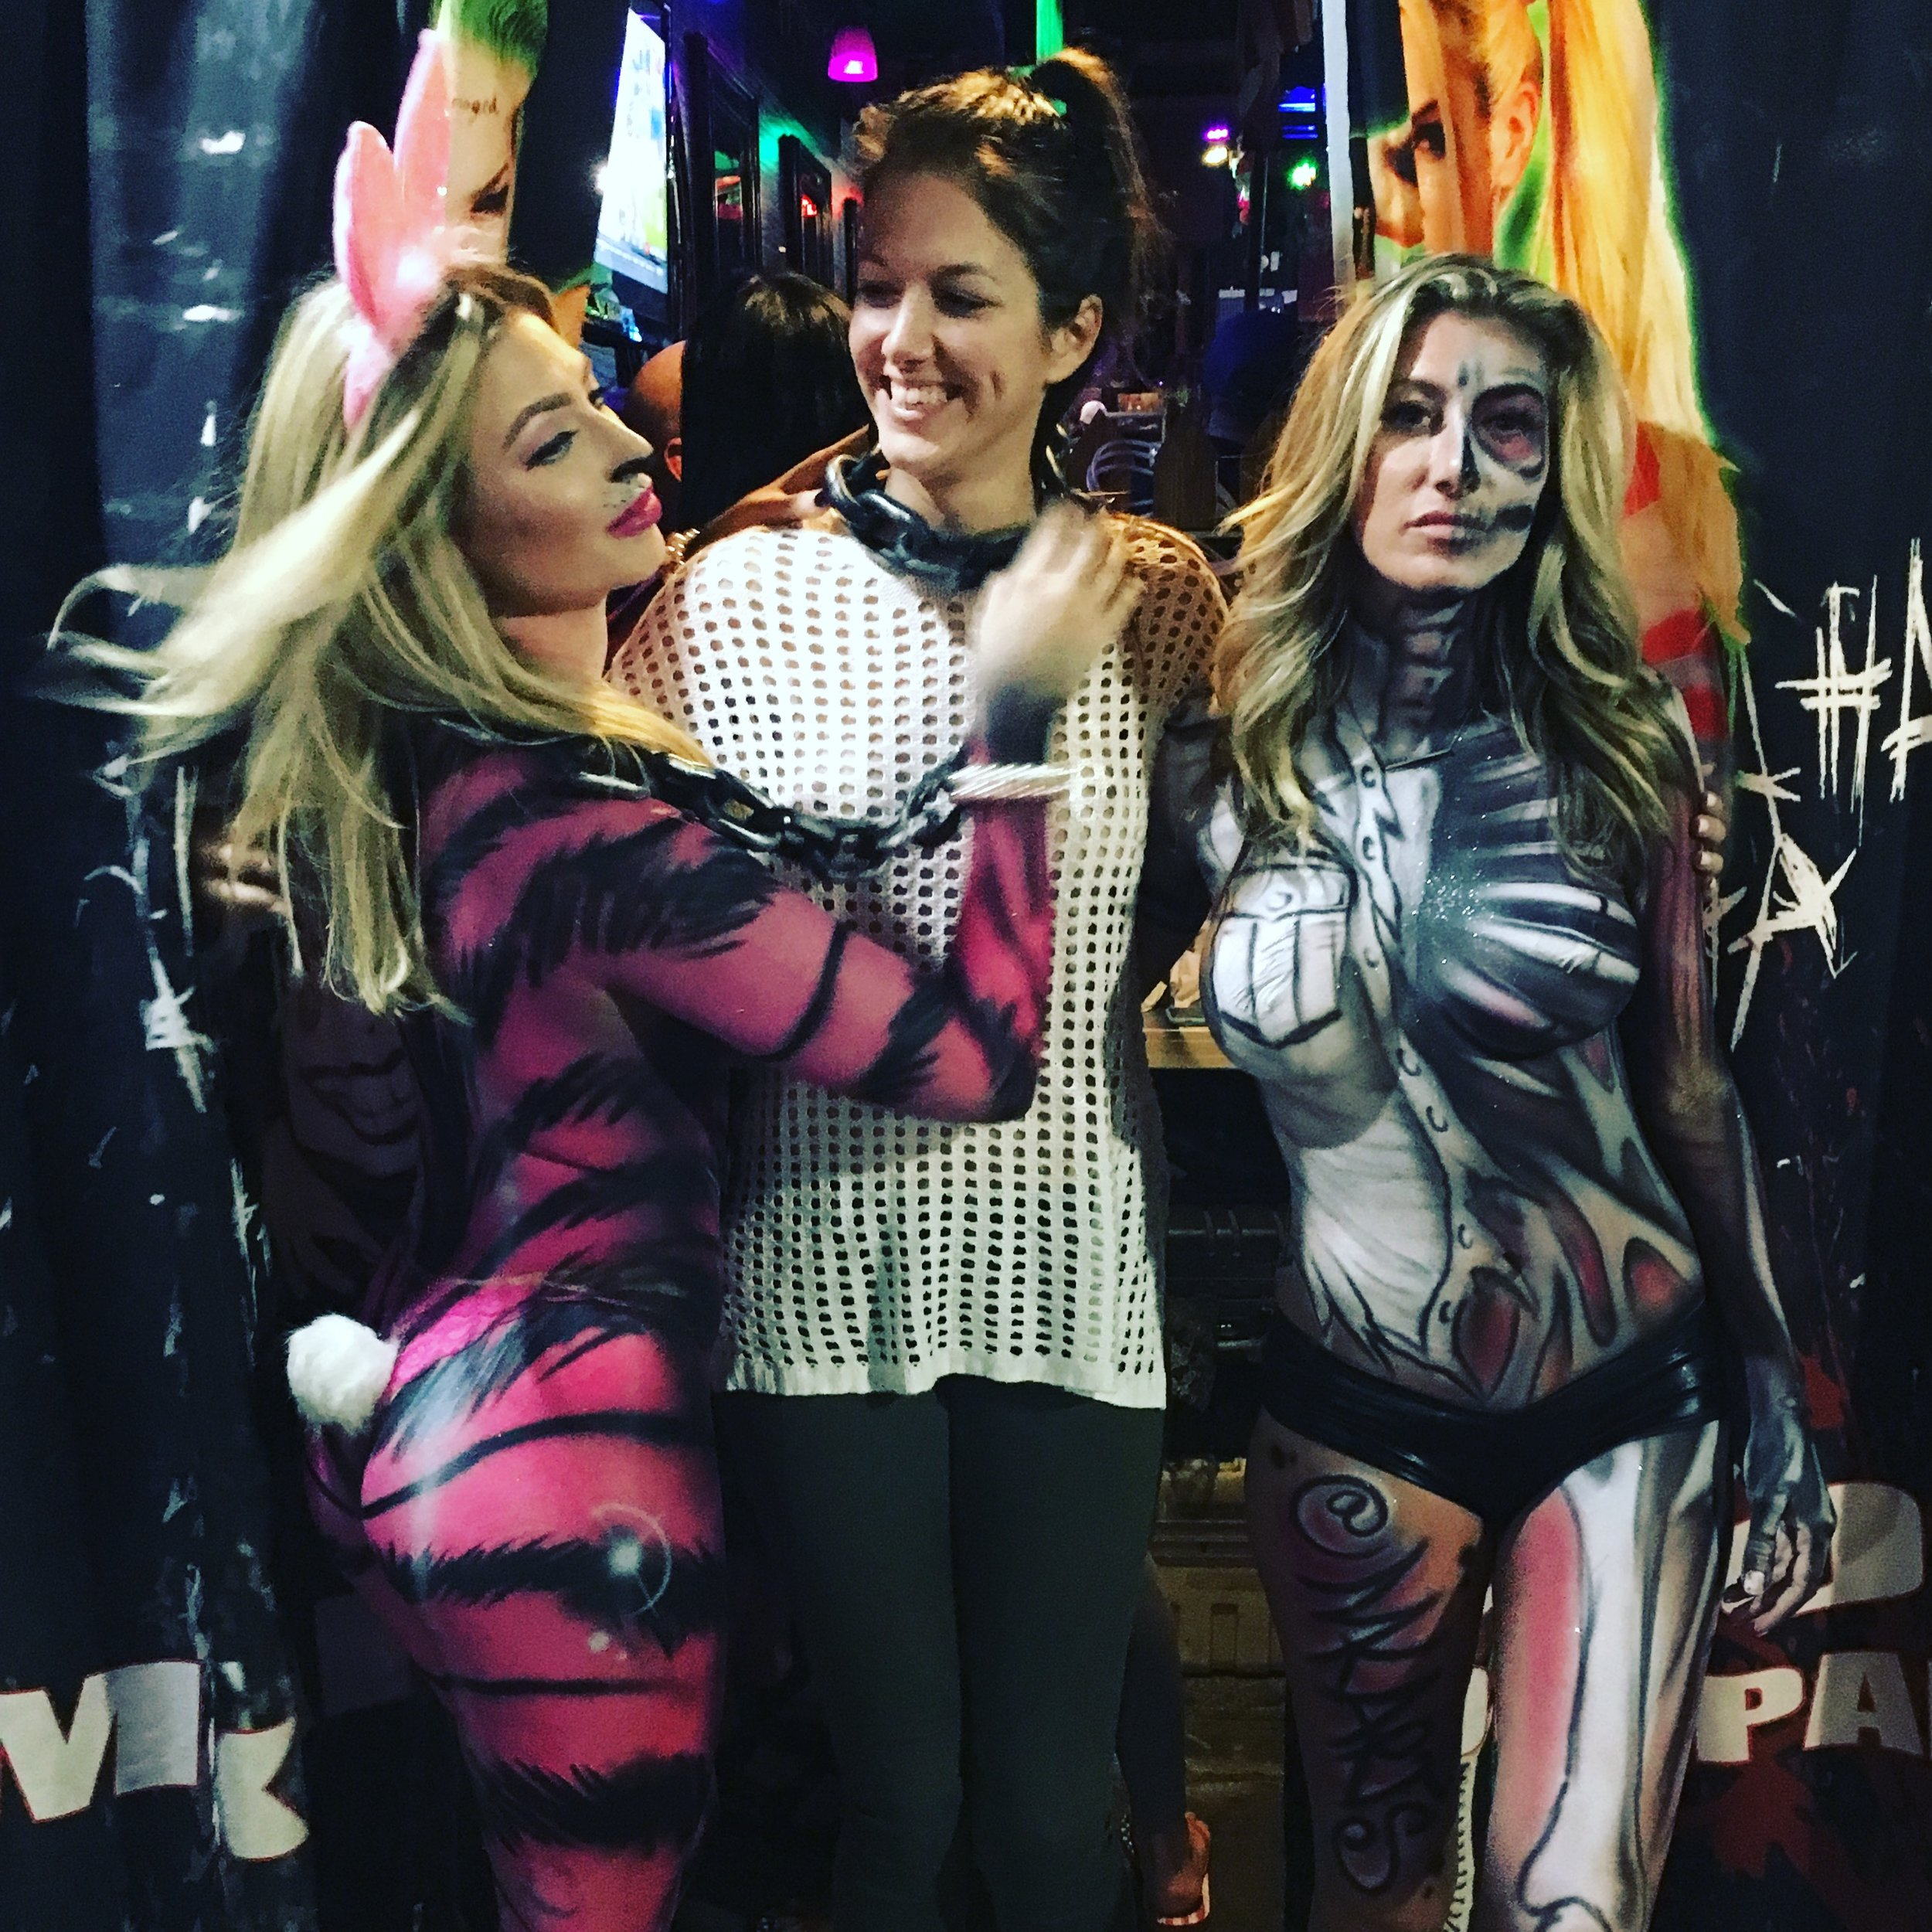 Alessandra Torre with two body paint models. The artist is mkarts.com